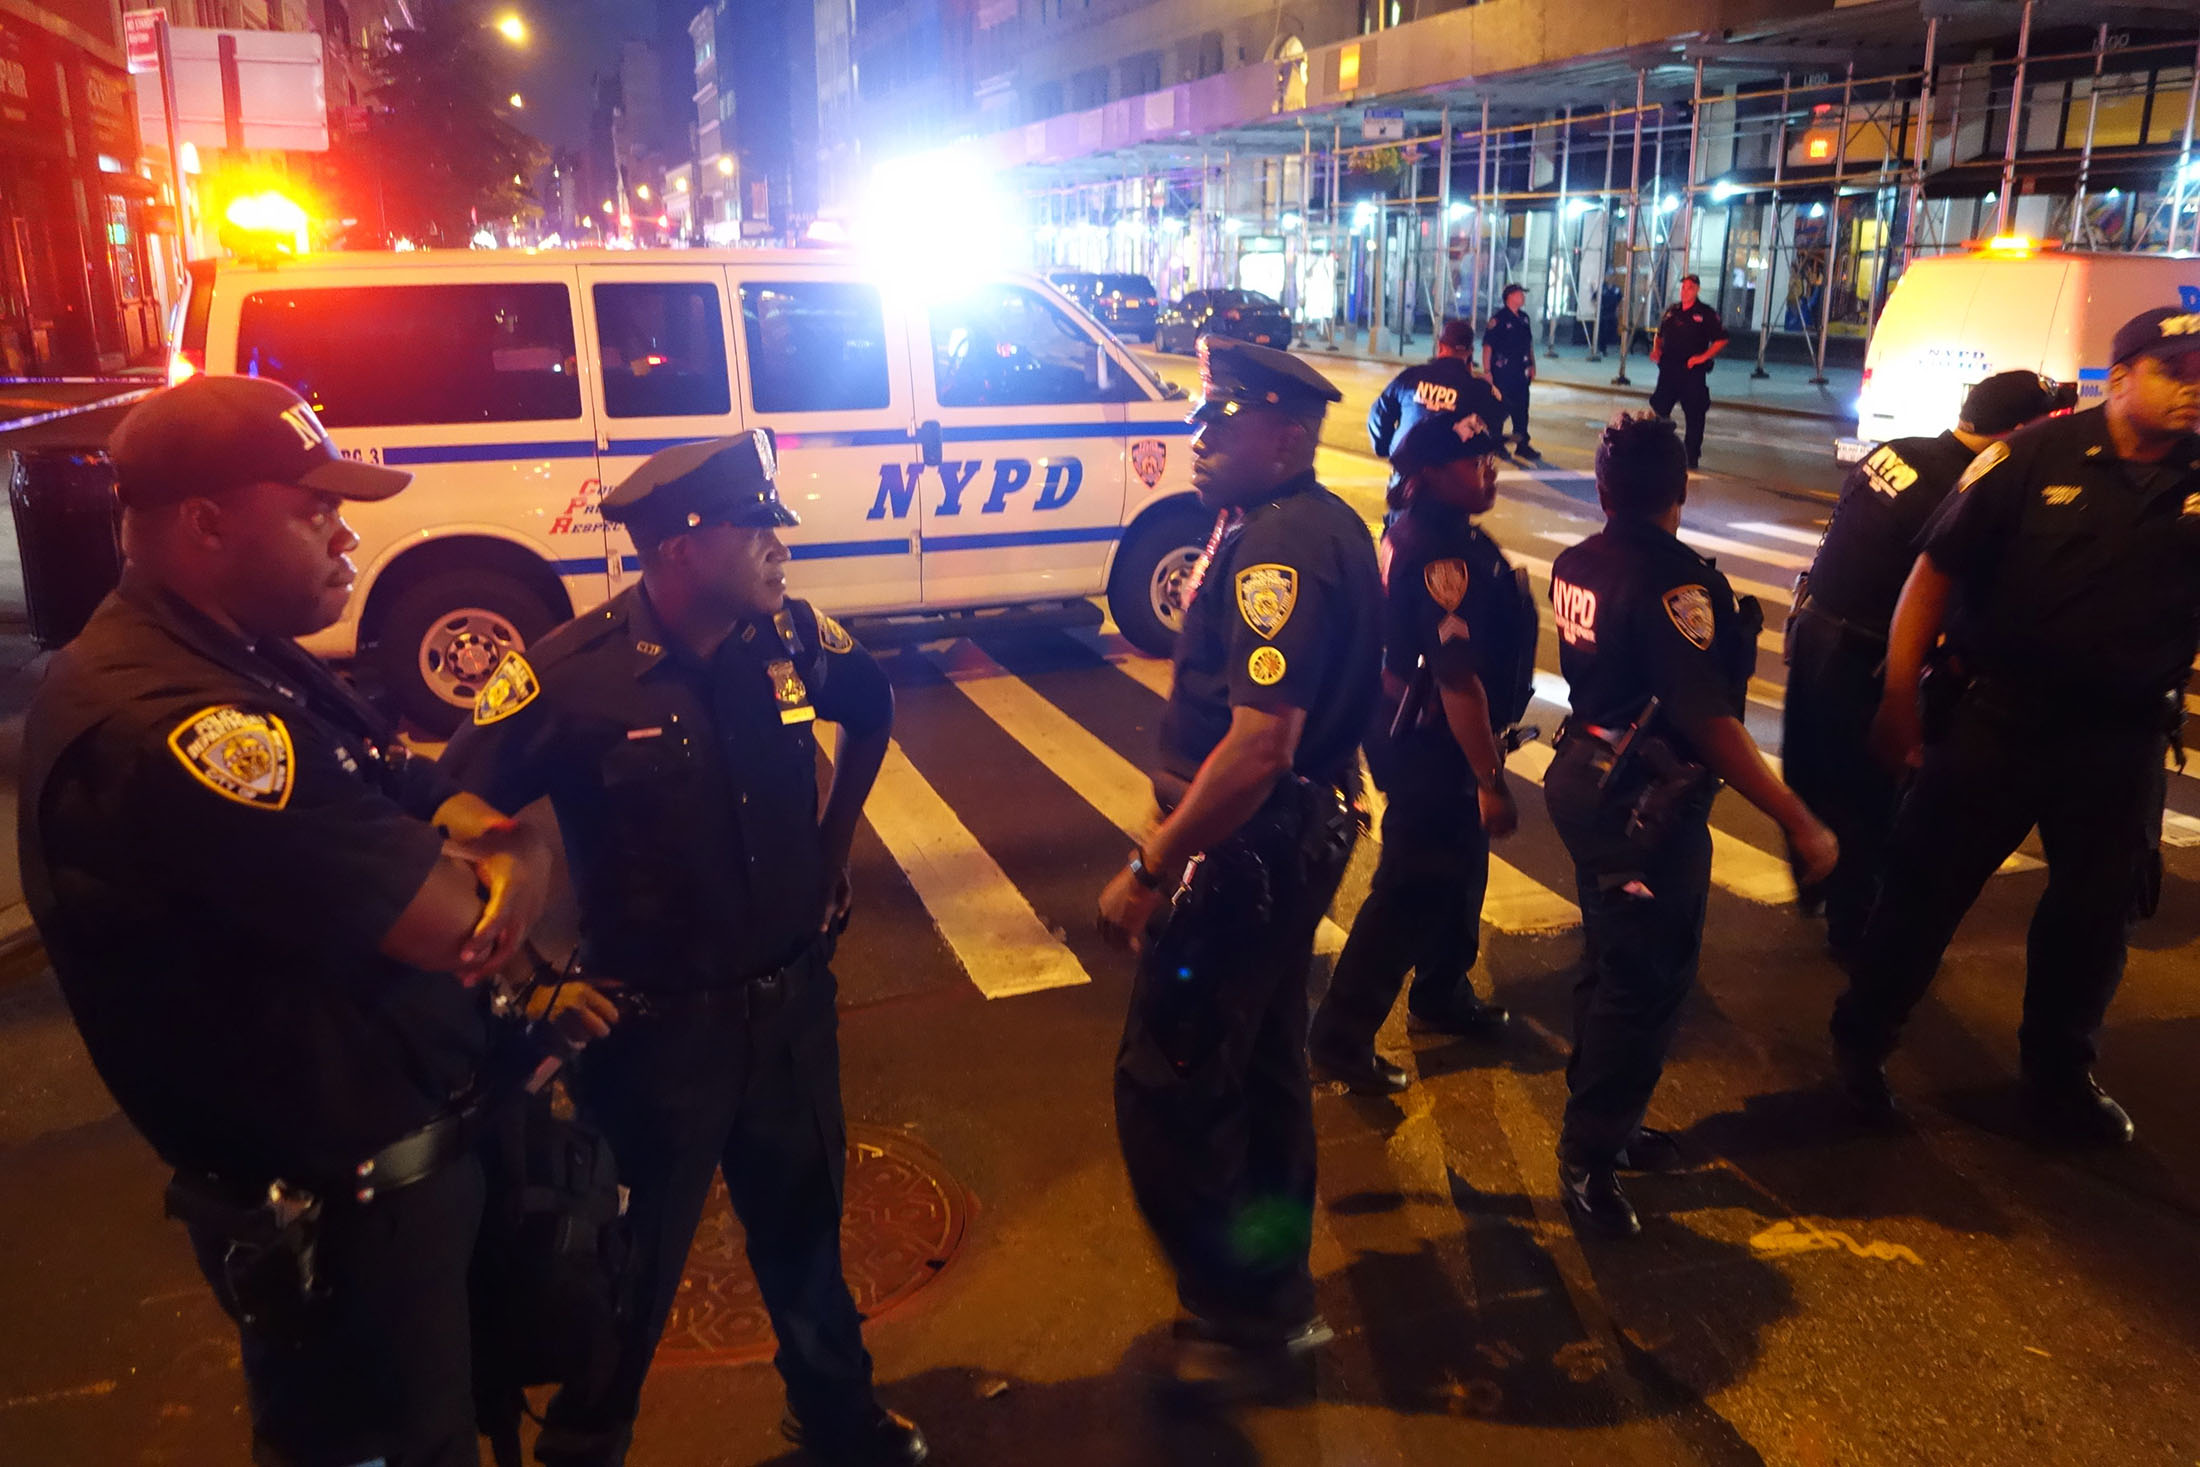 Alert System Faulted After New York Bombing Gets More Capability - Bloomberg